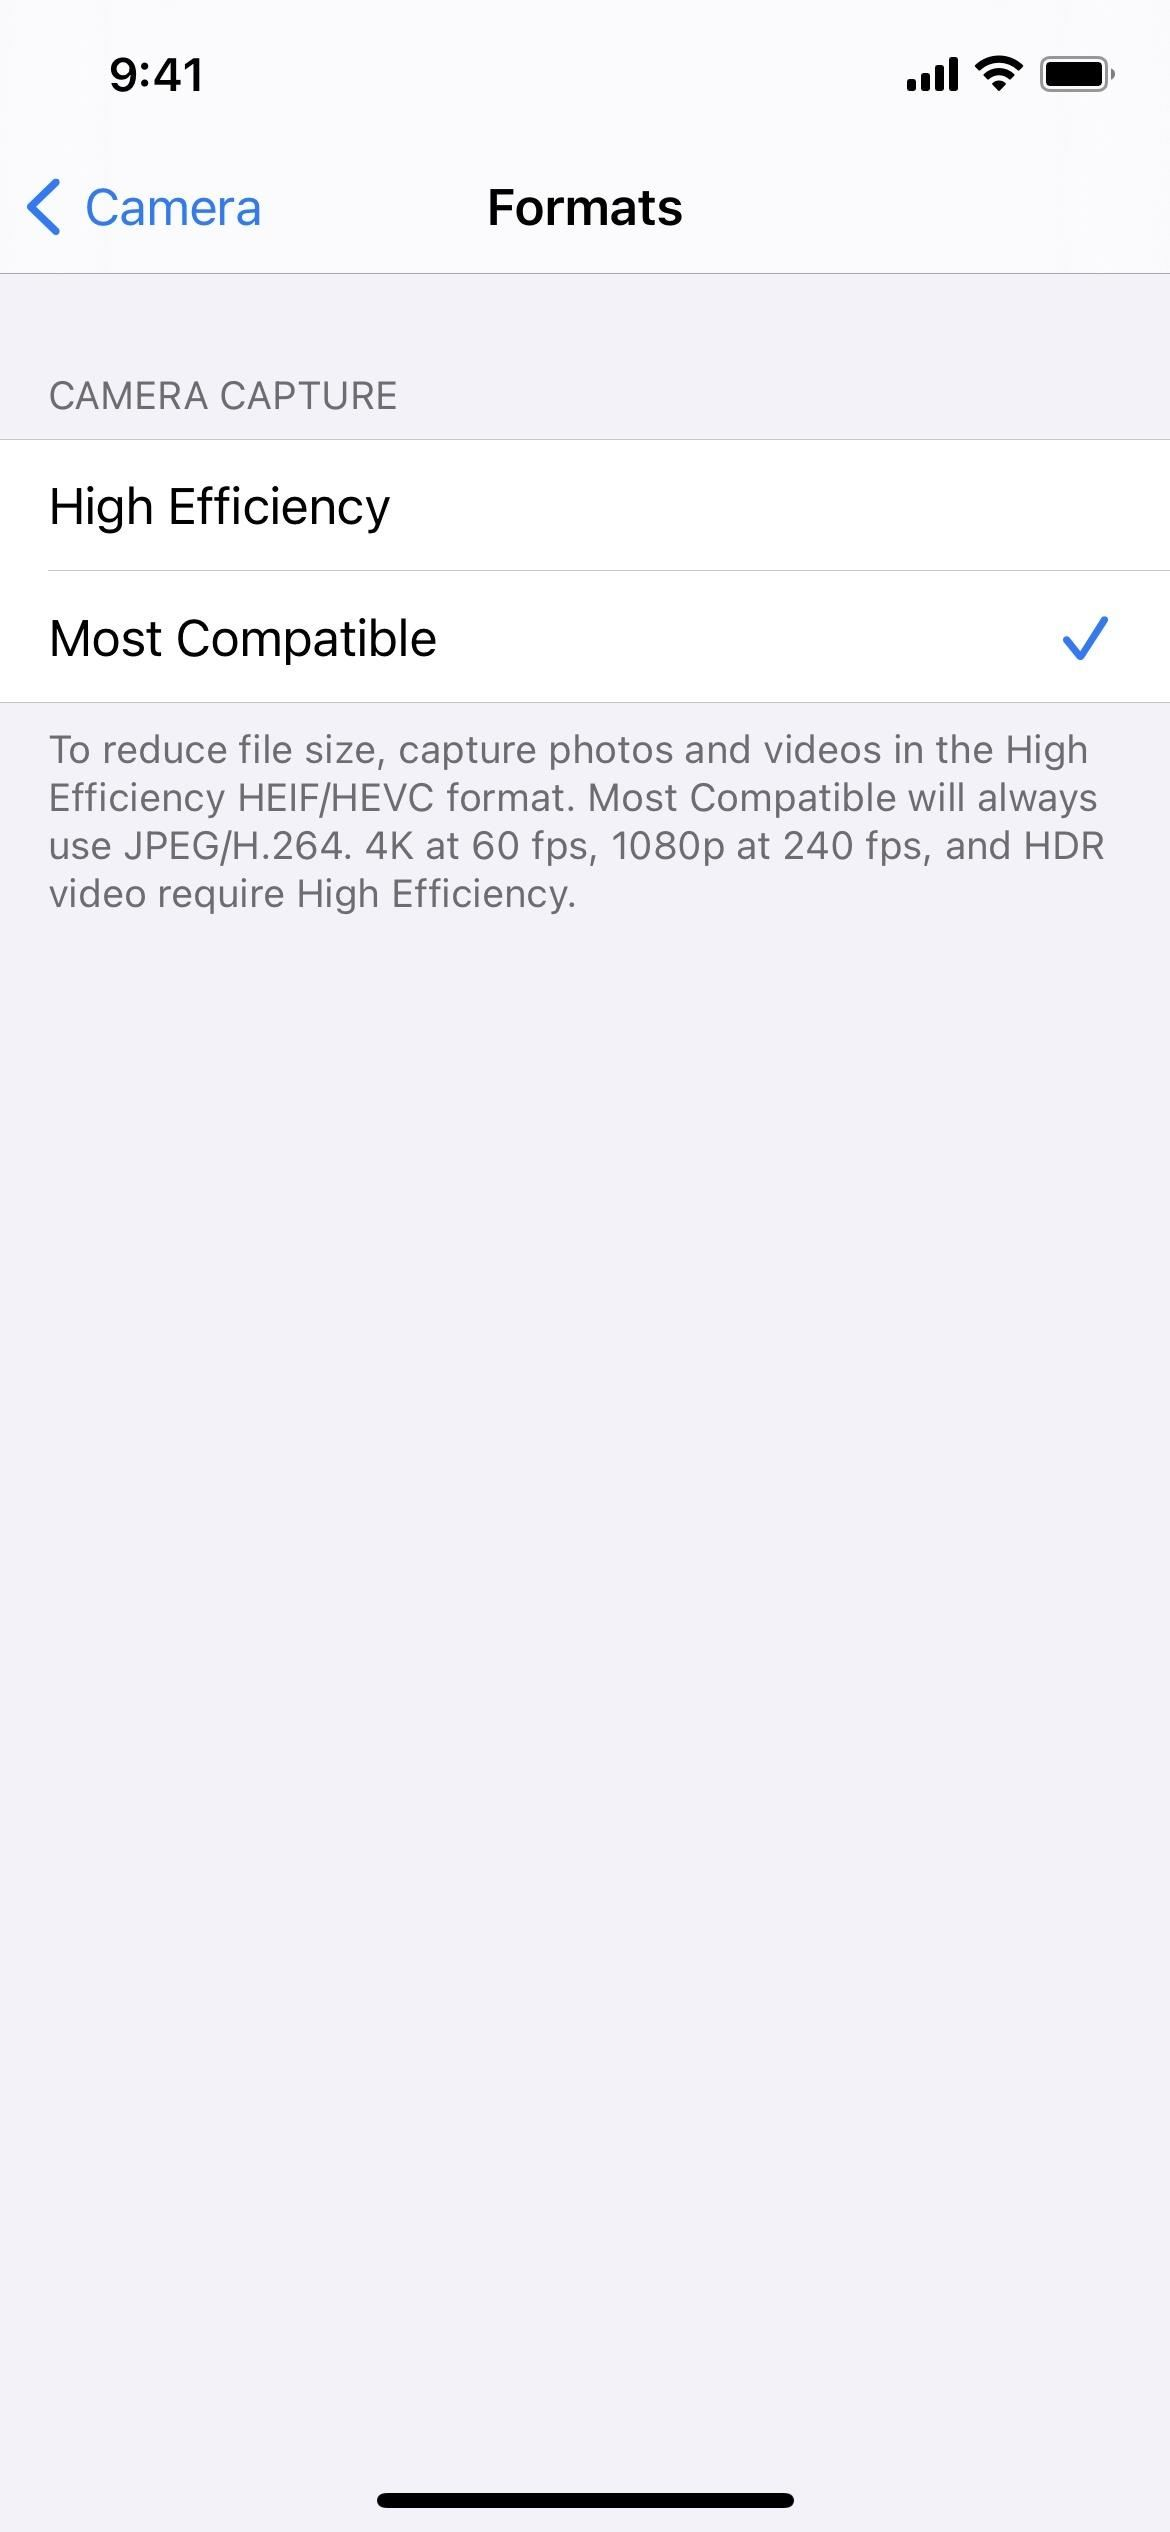 Why Some Non-Apple Devices Can't Open Photos & Videos Shared from Your iPhone (& How to Fix It)